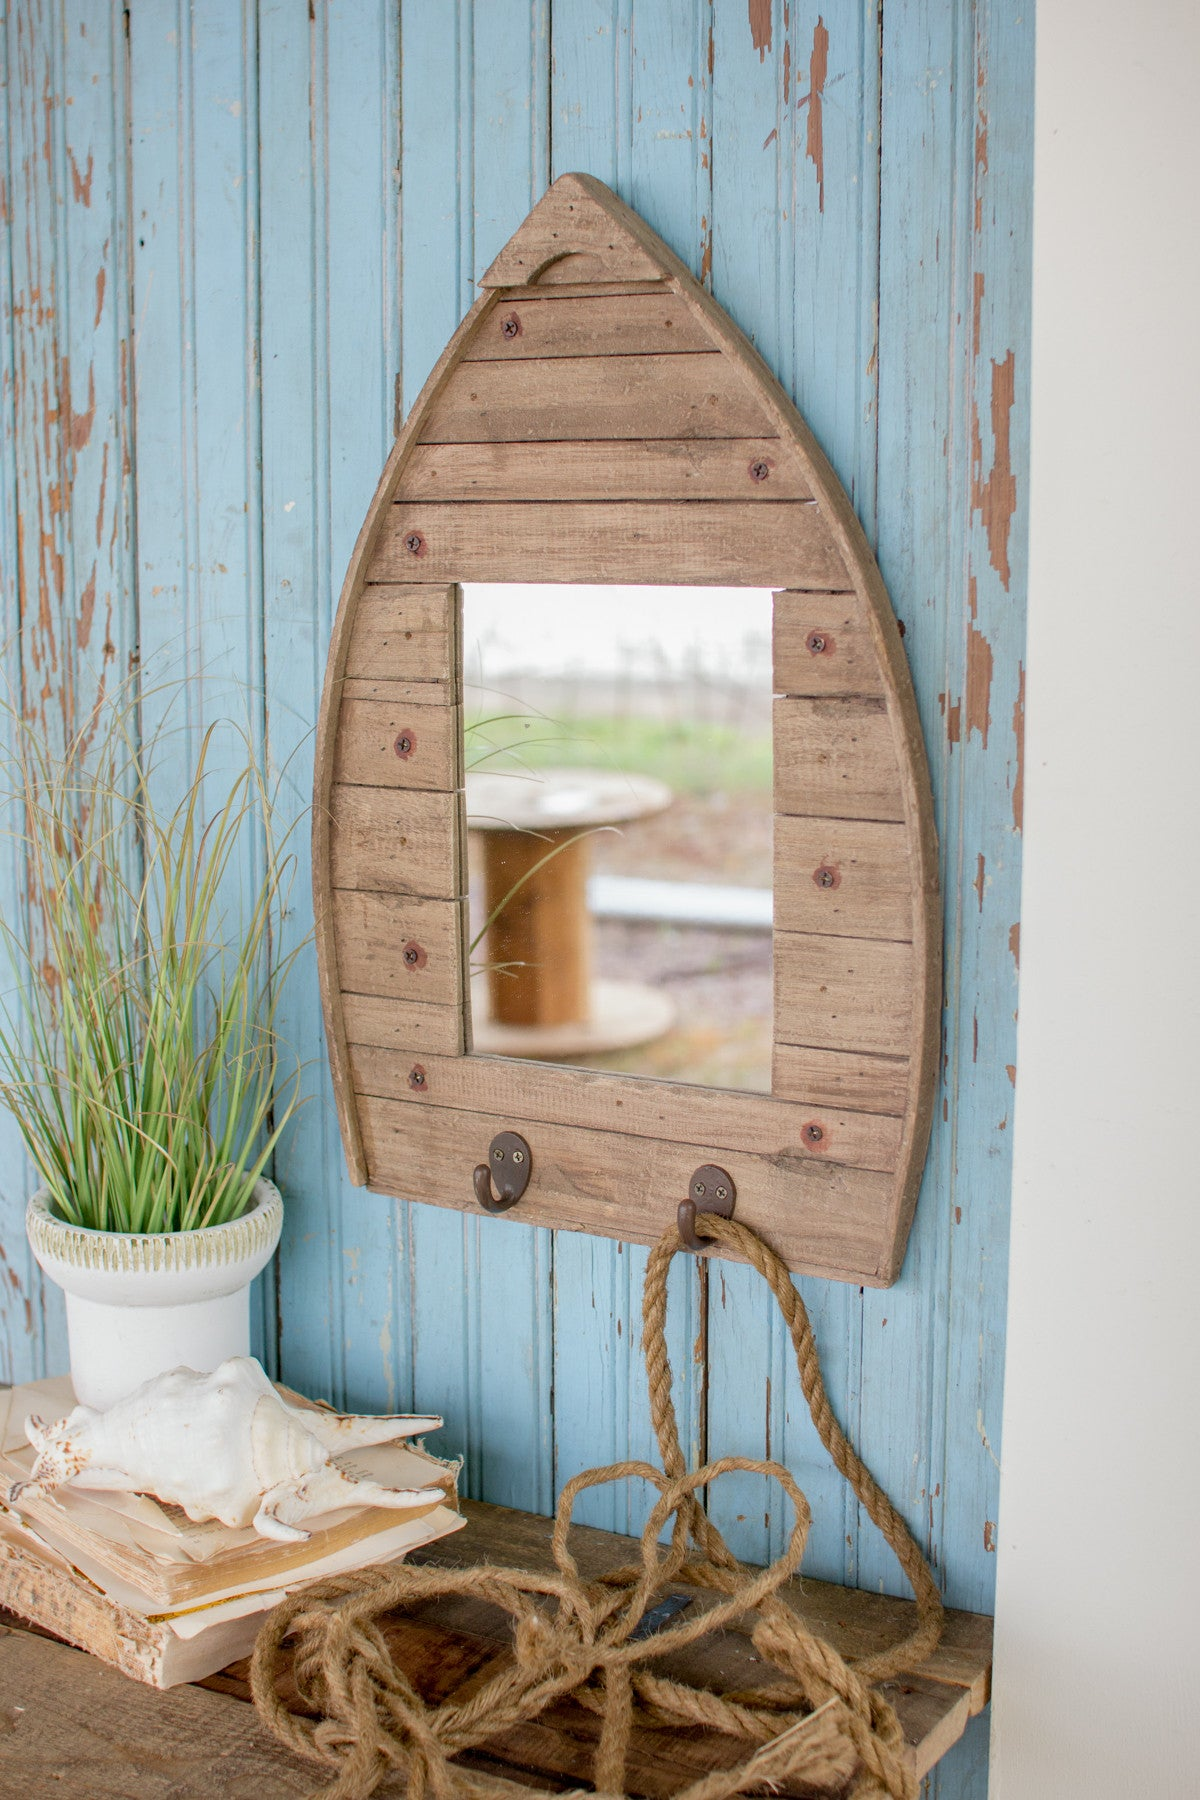 RECYCLED NATURAL WOODEN BOAT SHAPE MIRROR